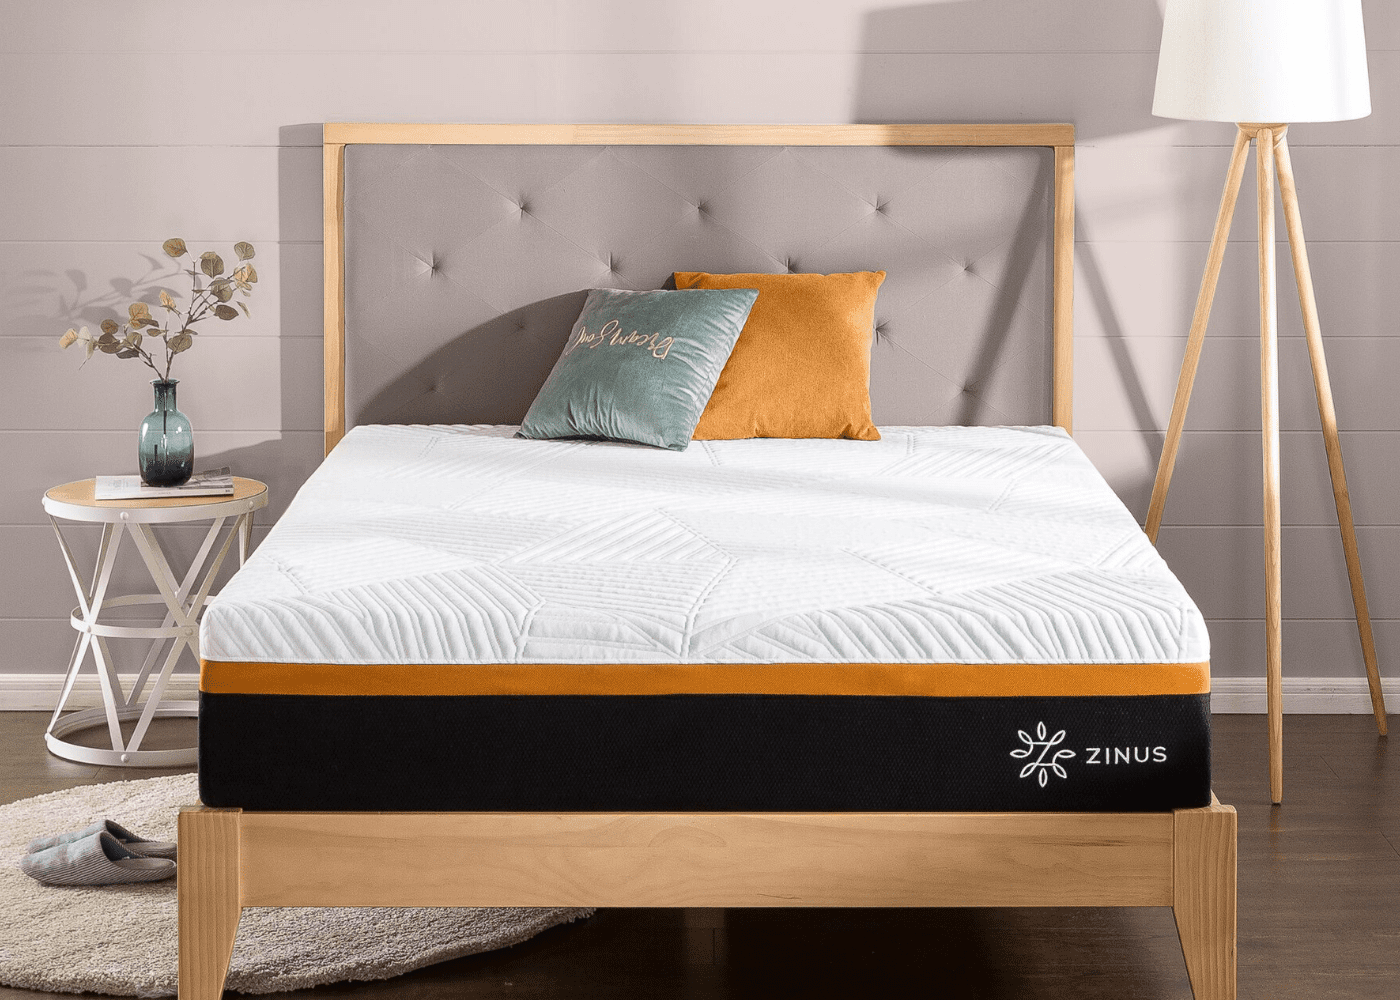 High-end quality, wallet-friendly prices: Zinus brings premium mattresses in a box to our shores